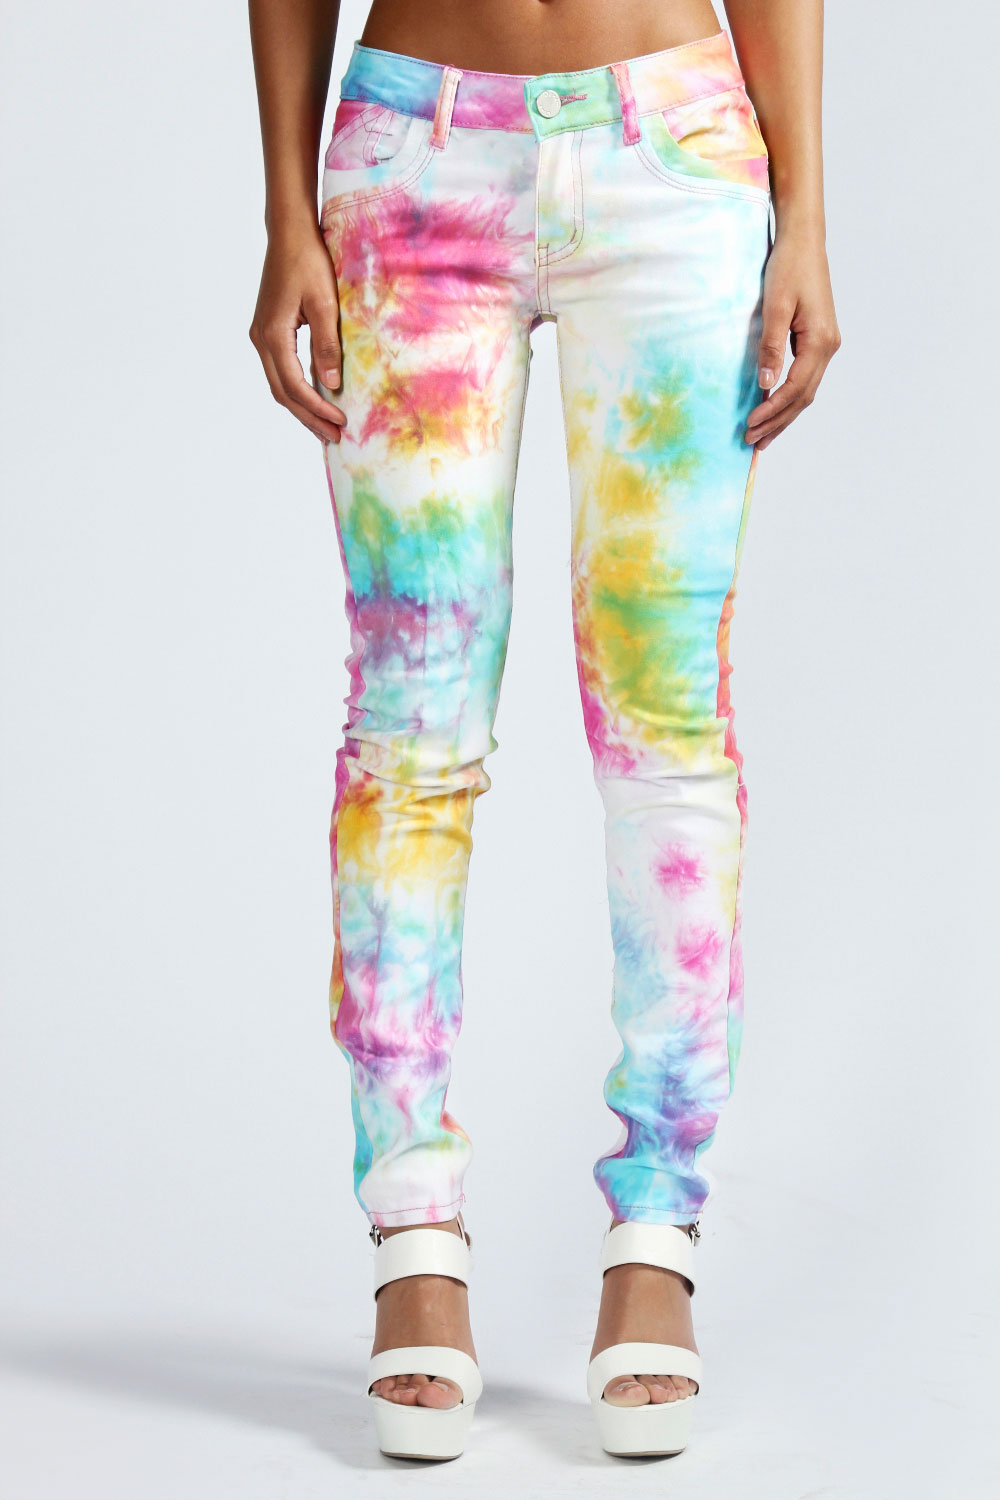 Here is an easy way to get yourself some tie-dye destroyed jeans. What you will need: 1. White jeans-you can use jeans that have been a little dirty because hey you are going to dye them anyways.